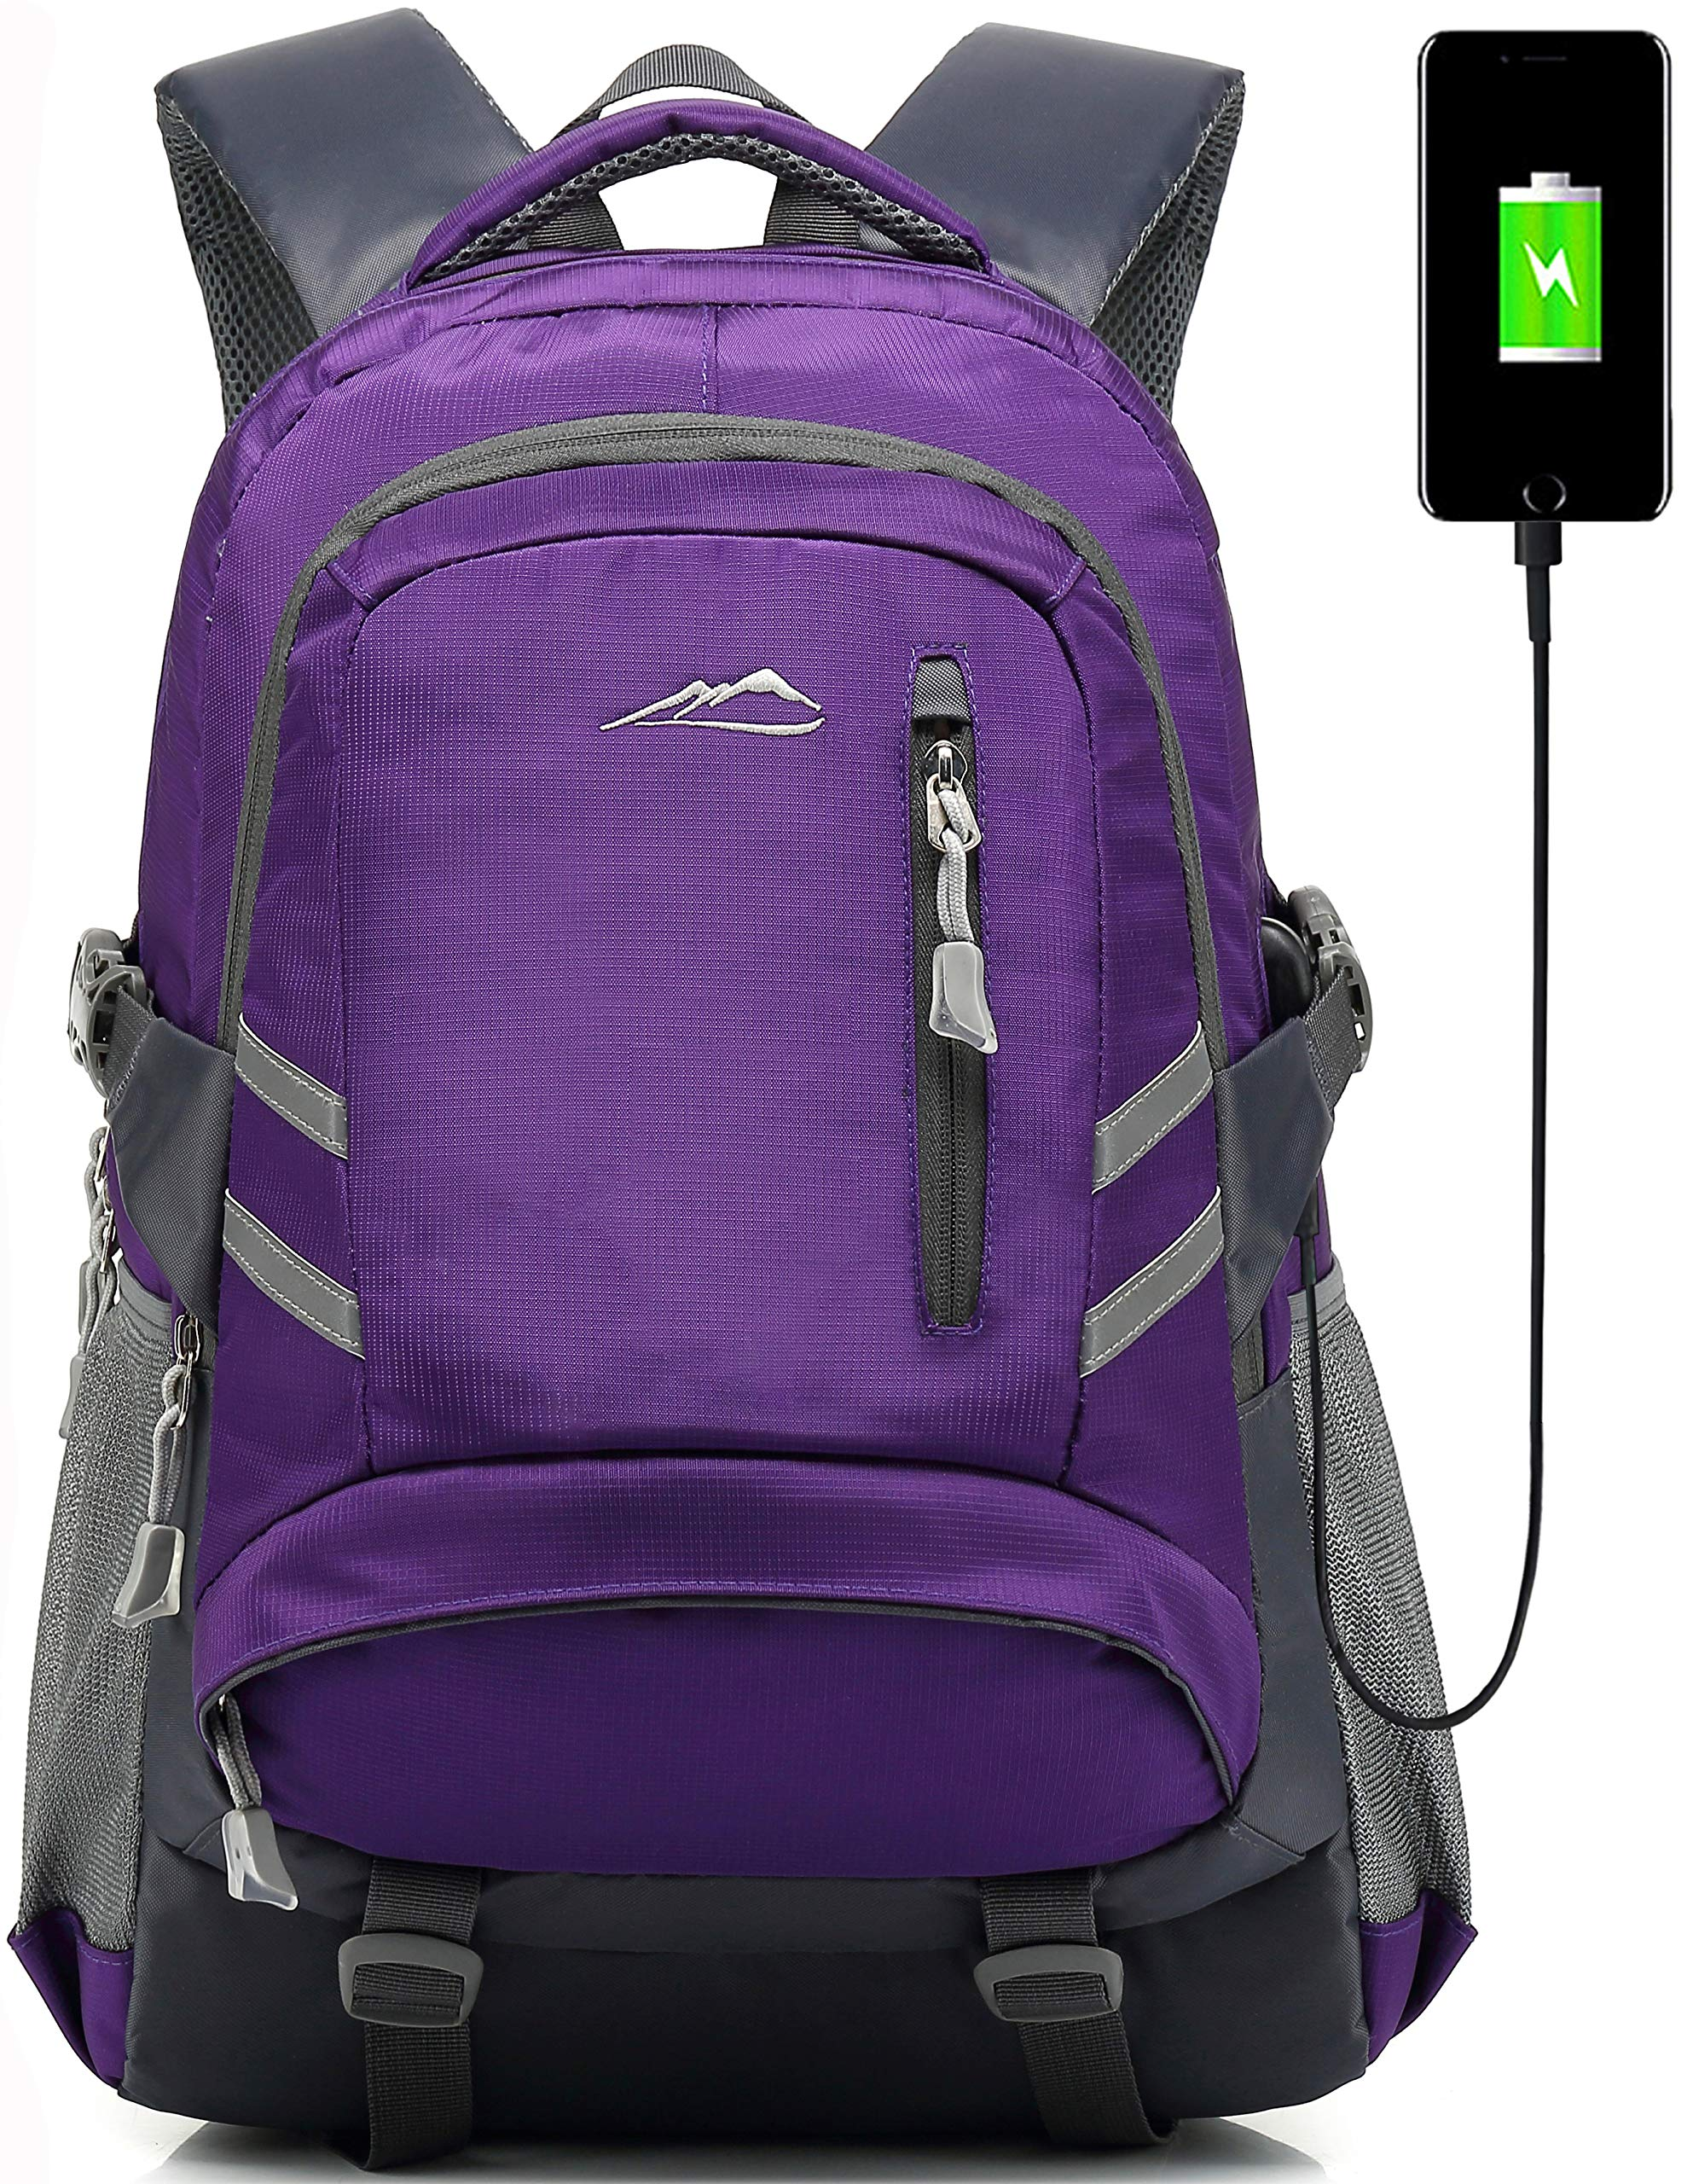 Backpack Bookbag for School College Student Sturdy Travel Business Laptop Compartment with USB Charging Port Luggage Chest Straps Night Light Reflective (Purple) by ProEtrade